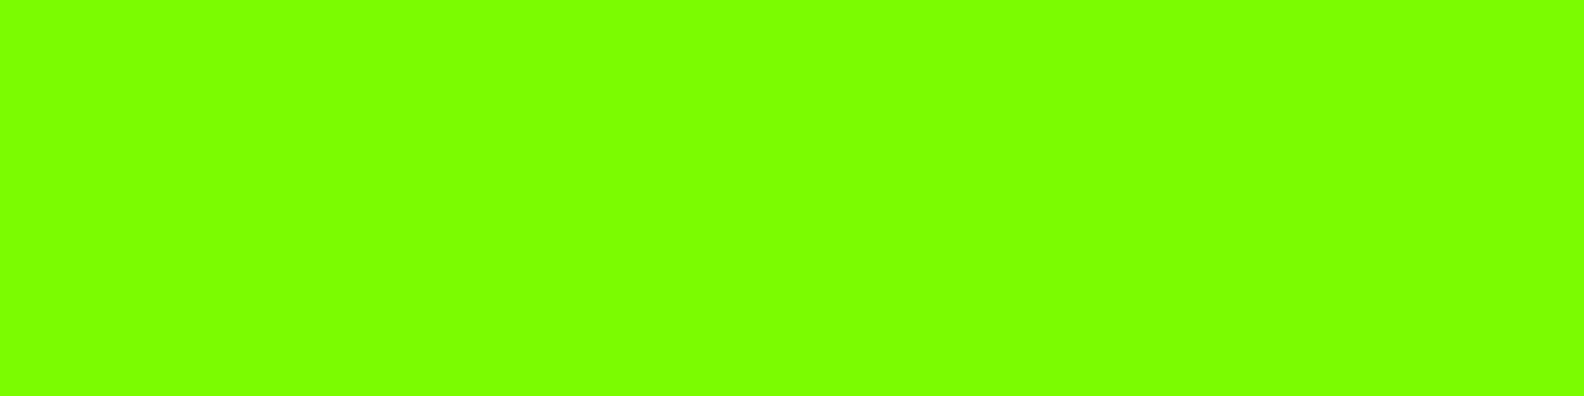 1584x396 Lawn Green Solid Color Background